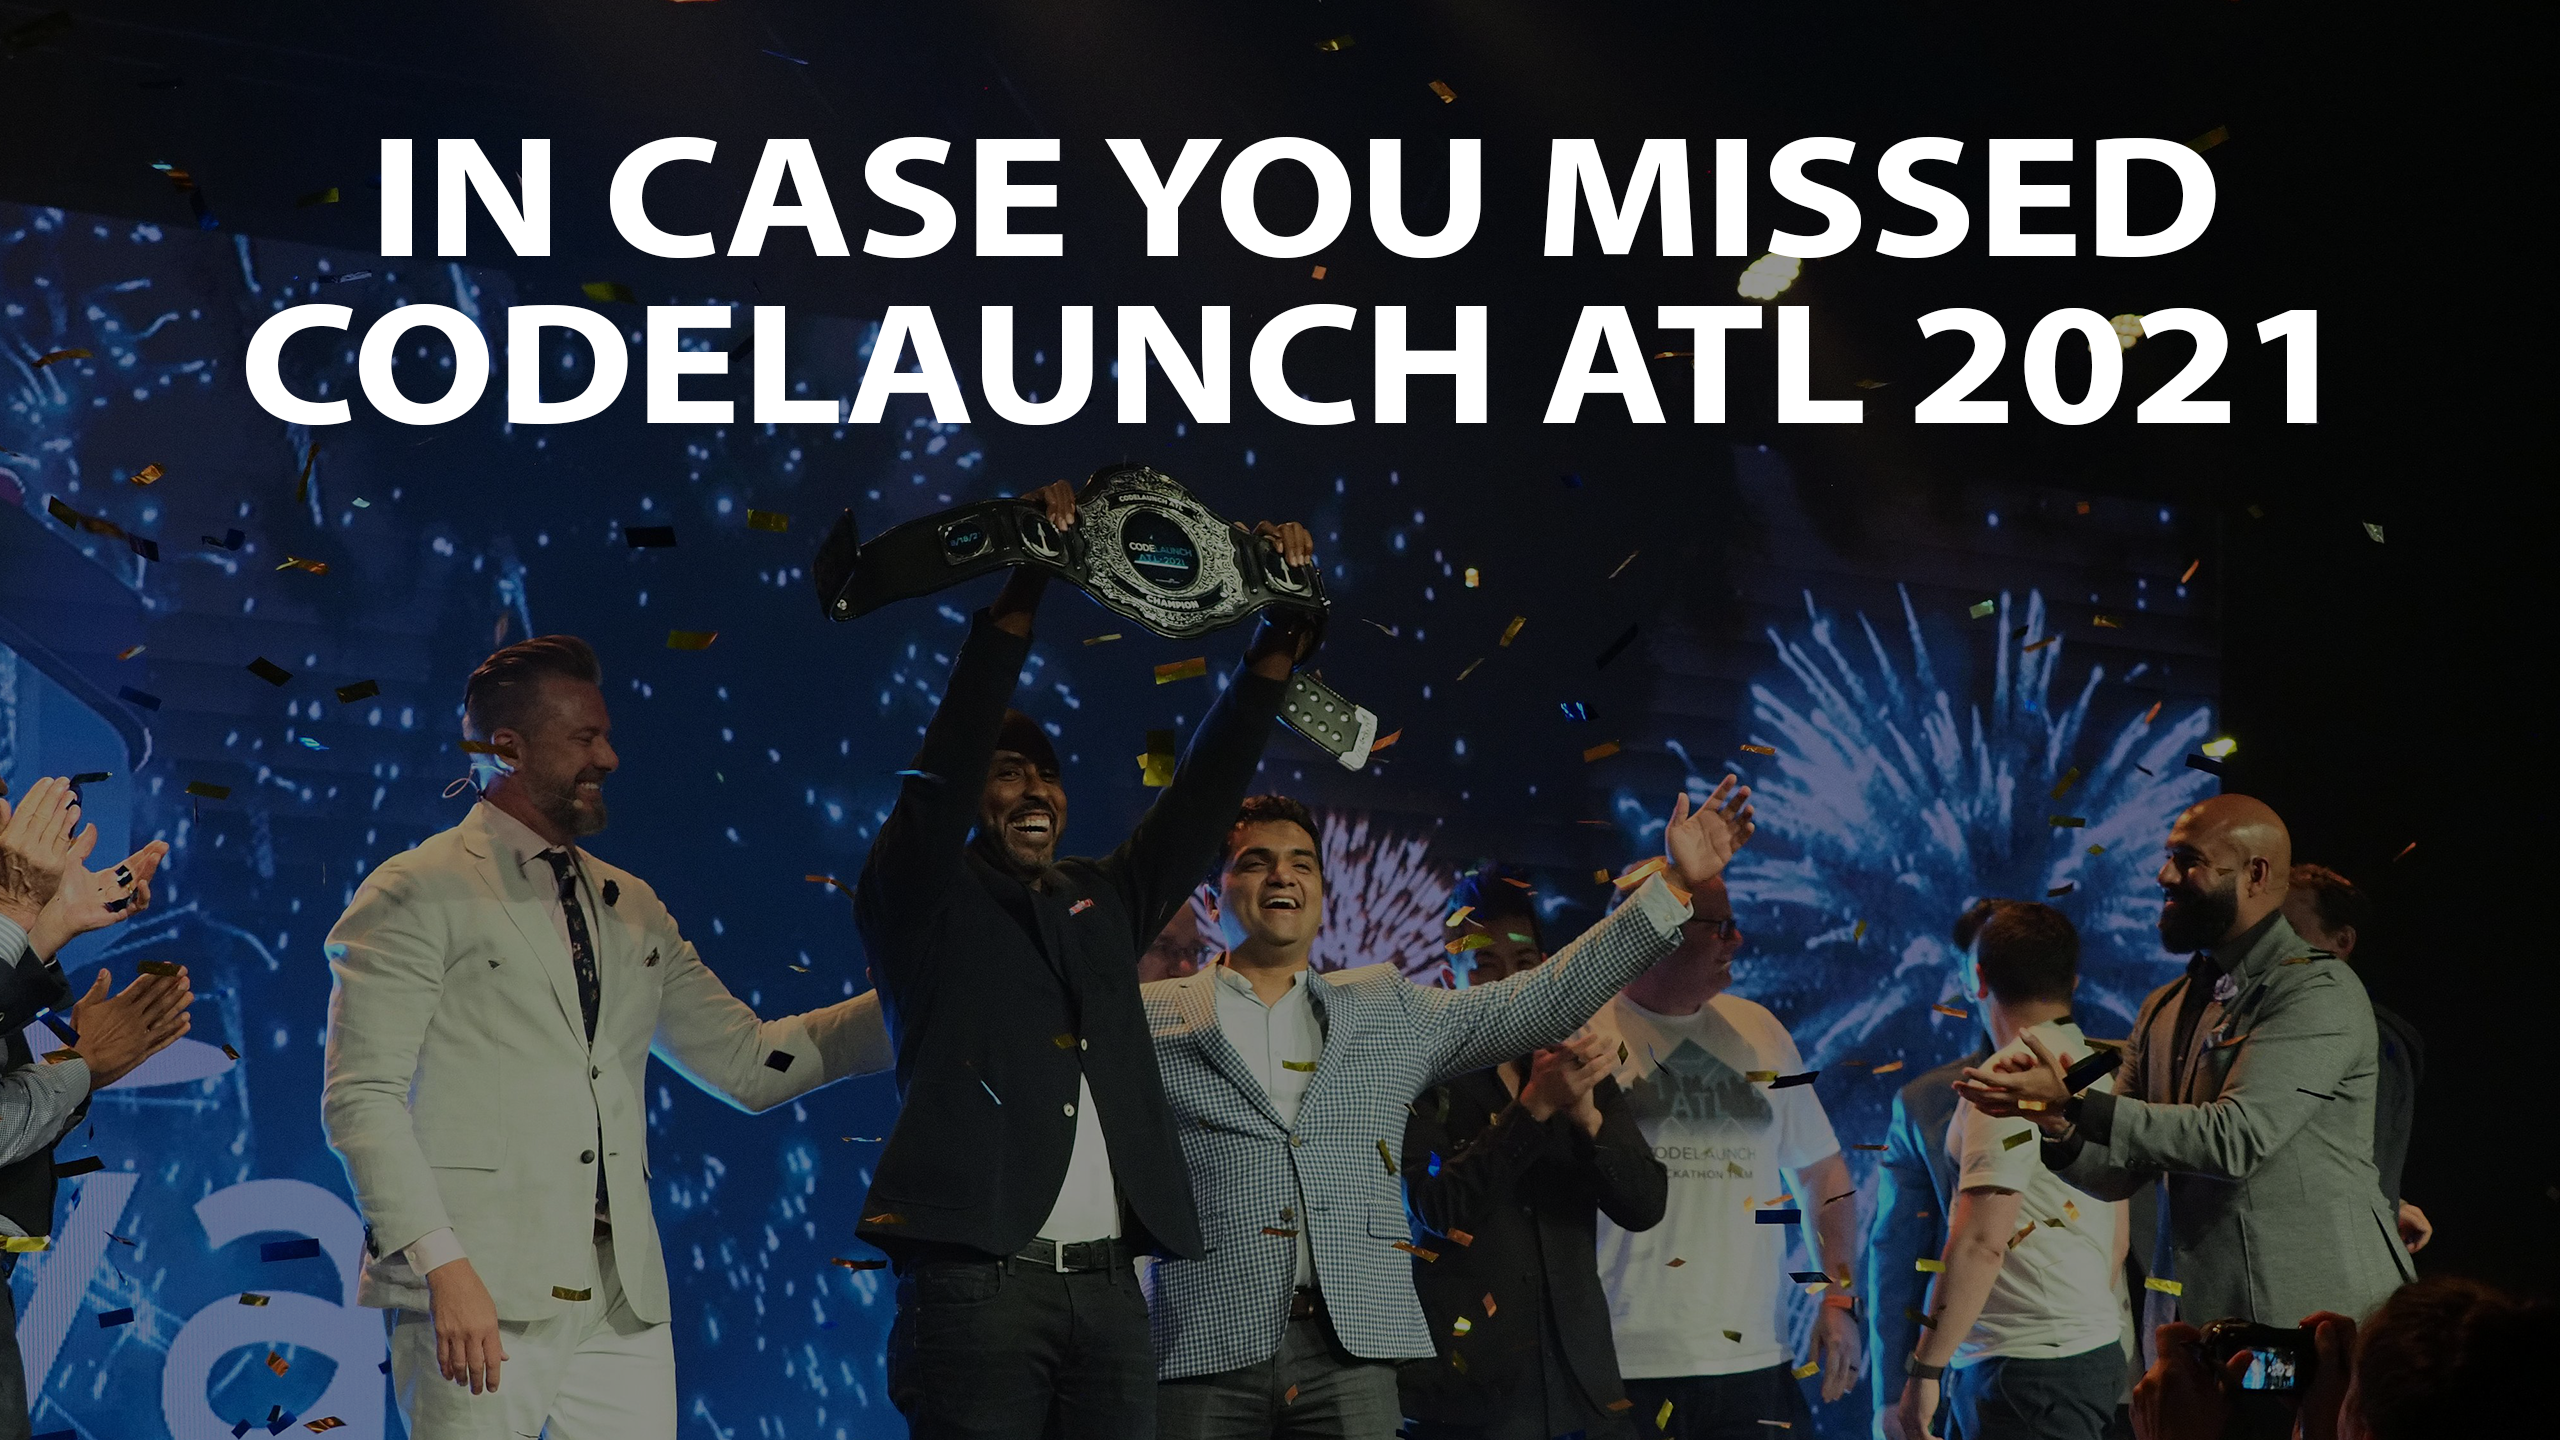 In Case You Missed CodeLaunch ATL 2021